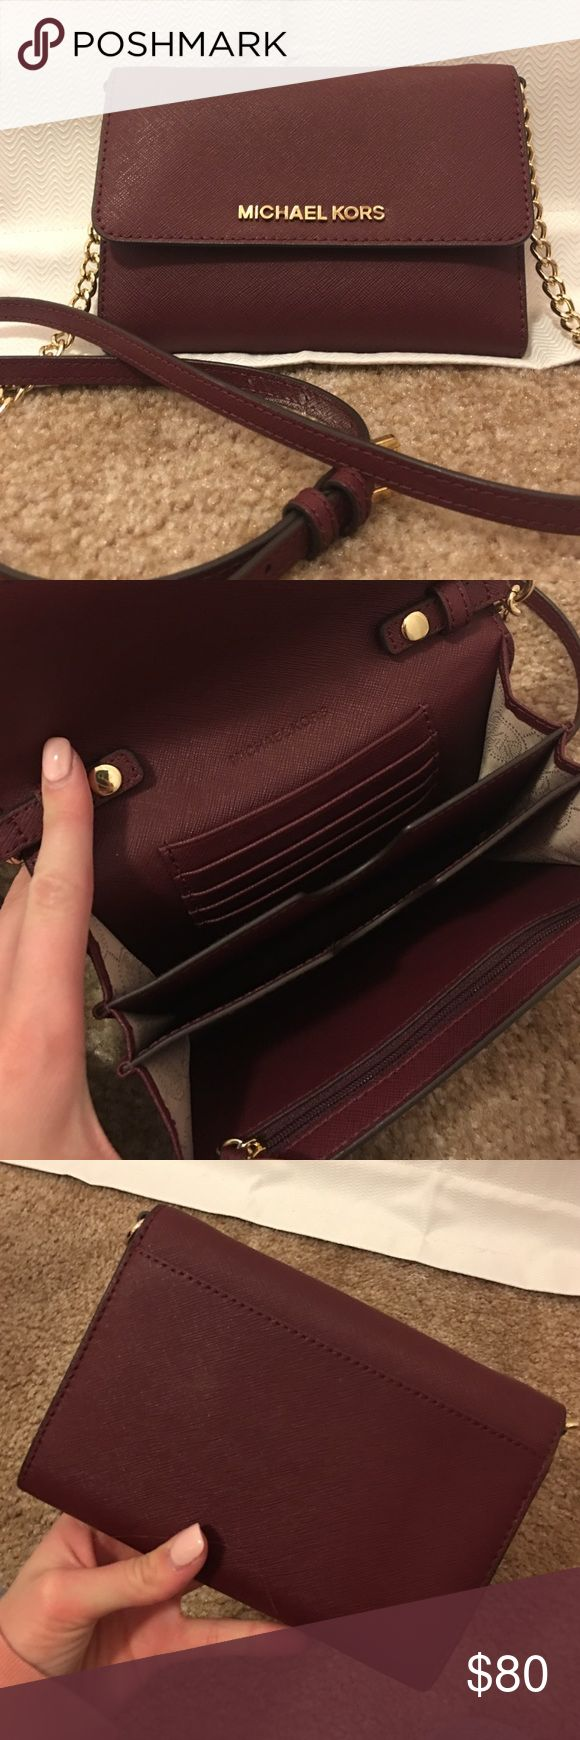 Small cross body Micheal Kors purse Small maroon crossbody authentic Micheal Kors. Only used a couple times, extremely good condition. Michael Kors Bags Crossbody Bags